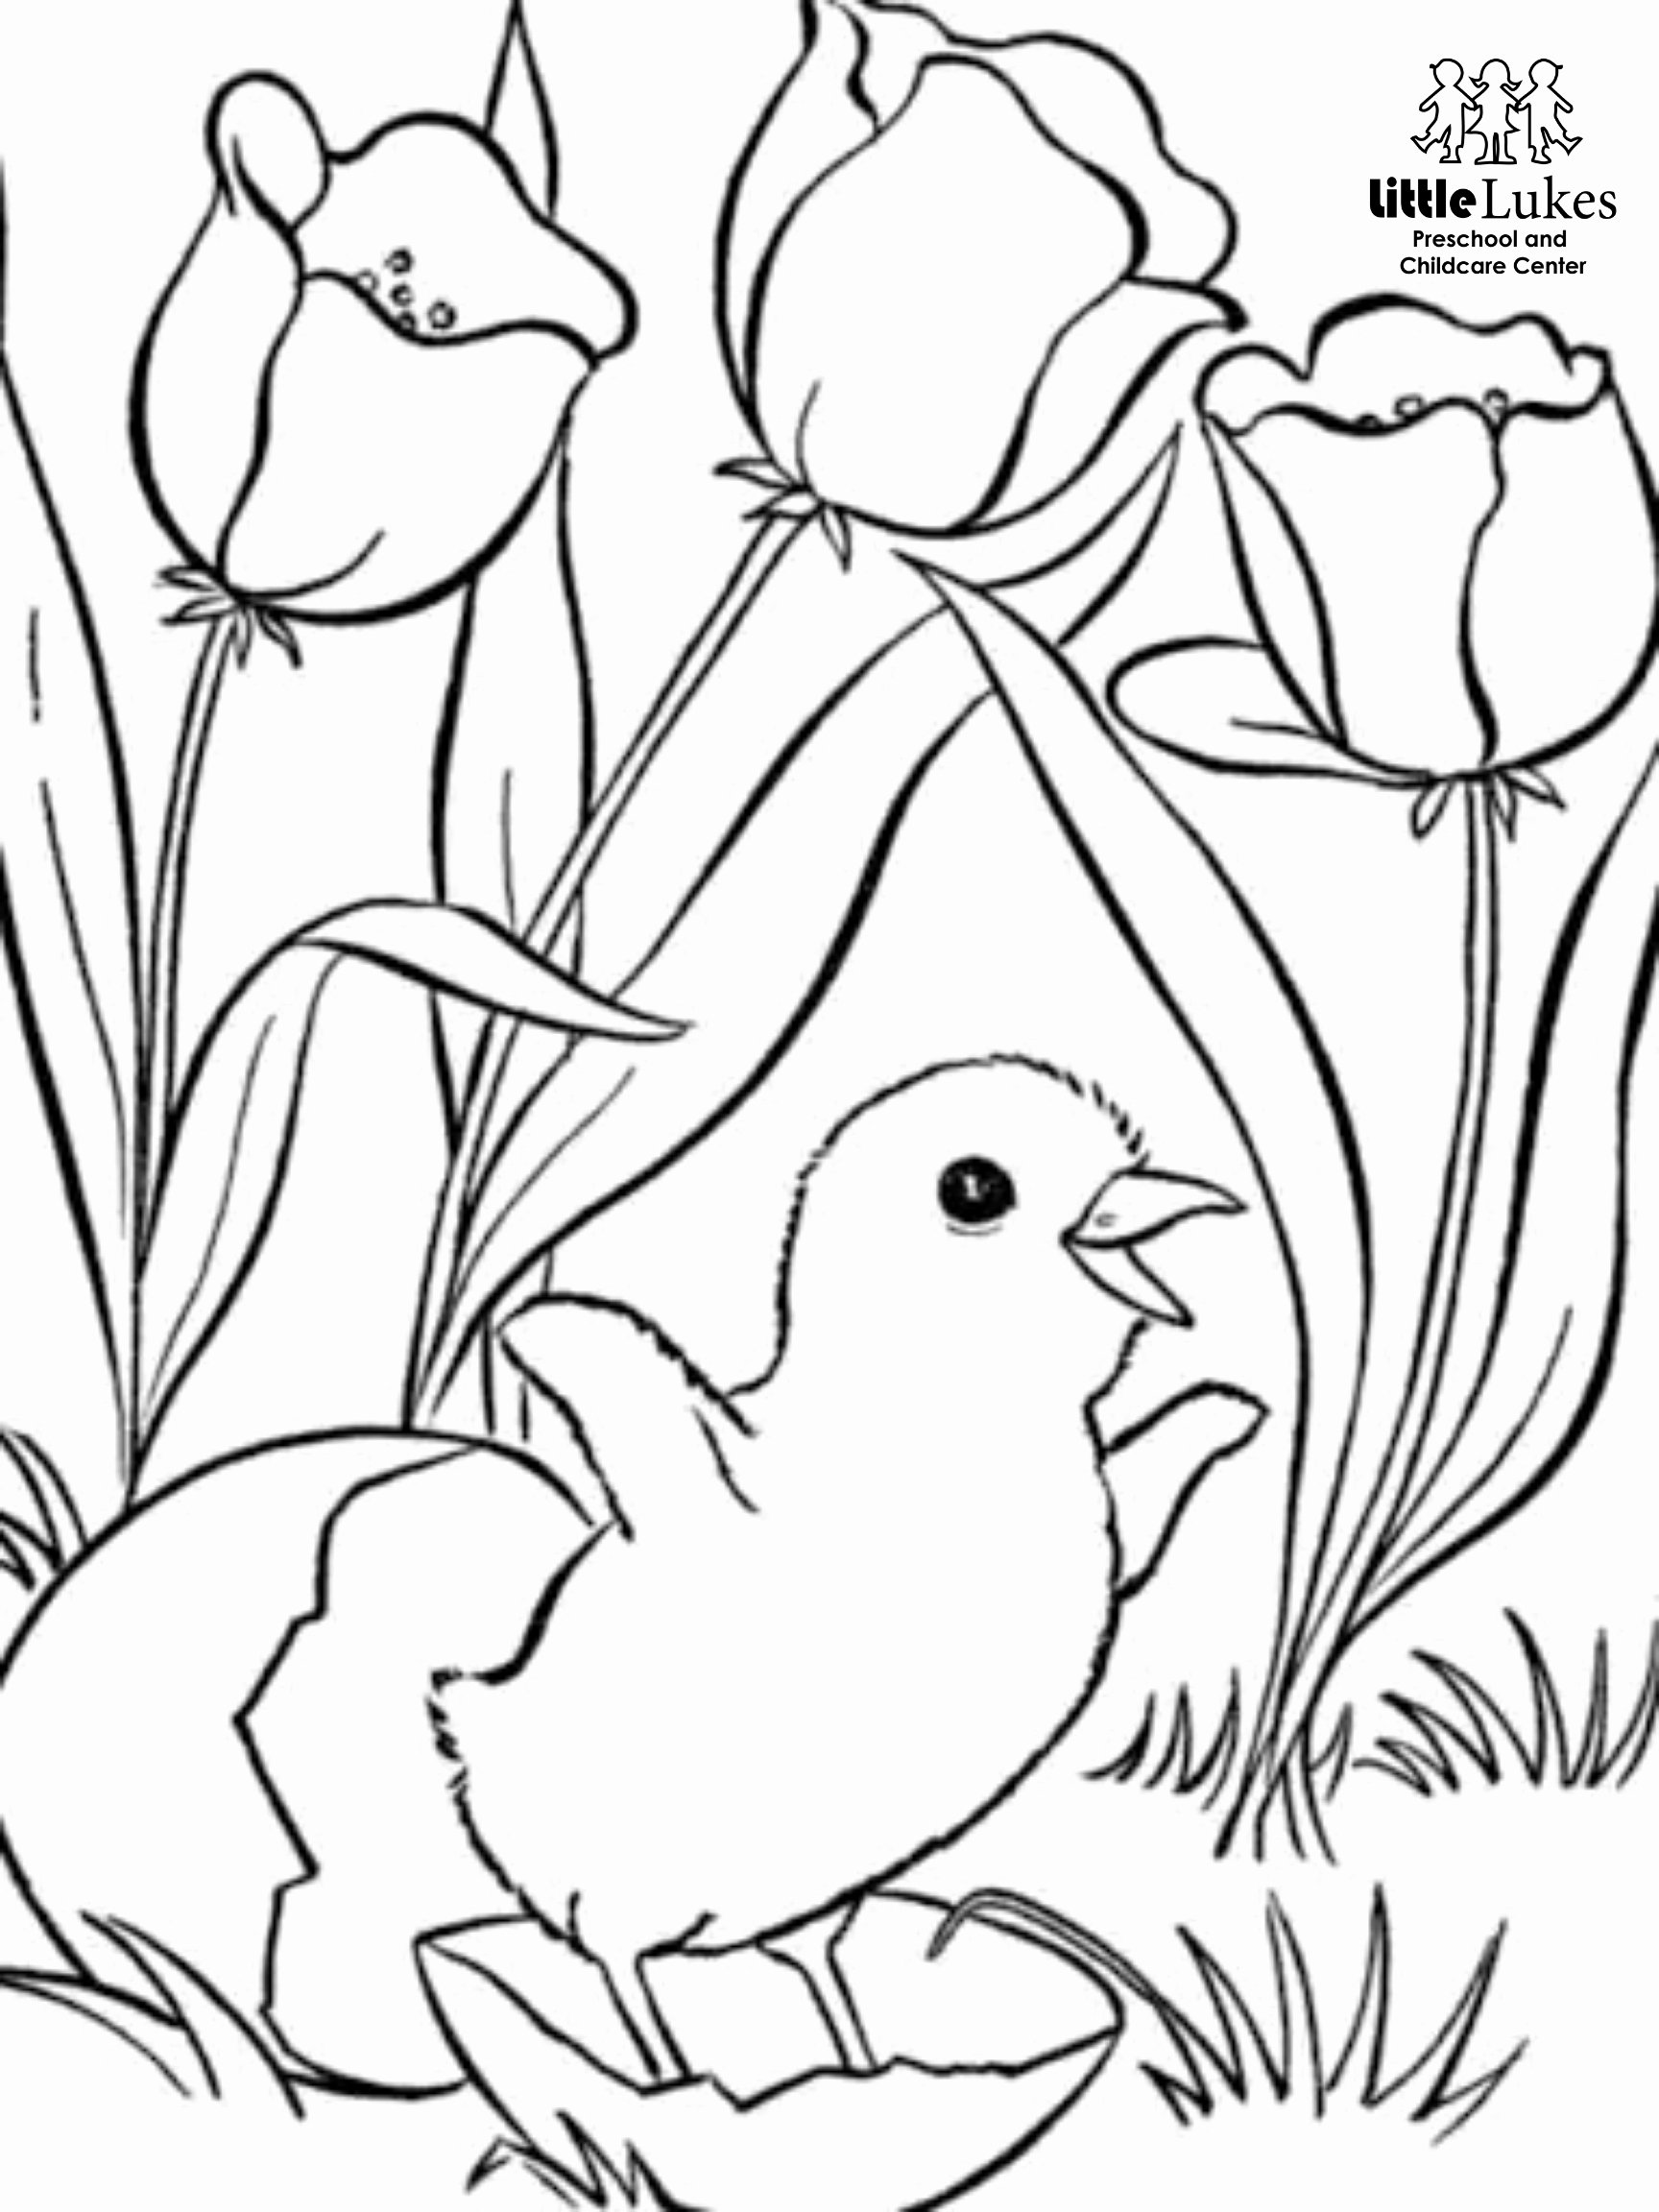 Spring Coloring Worksheets for Preschoolers New Spring Coloring Pages for Adults to Print and Color Easter